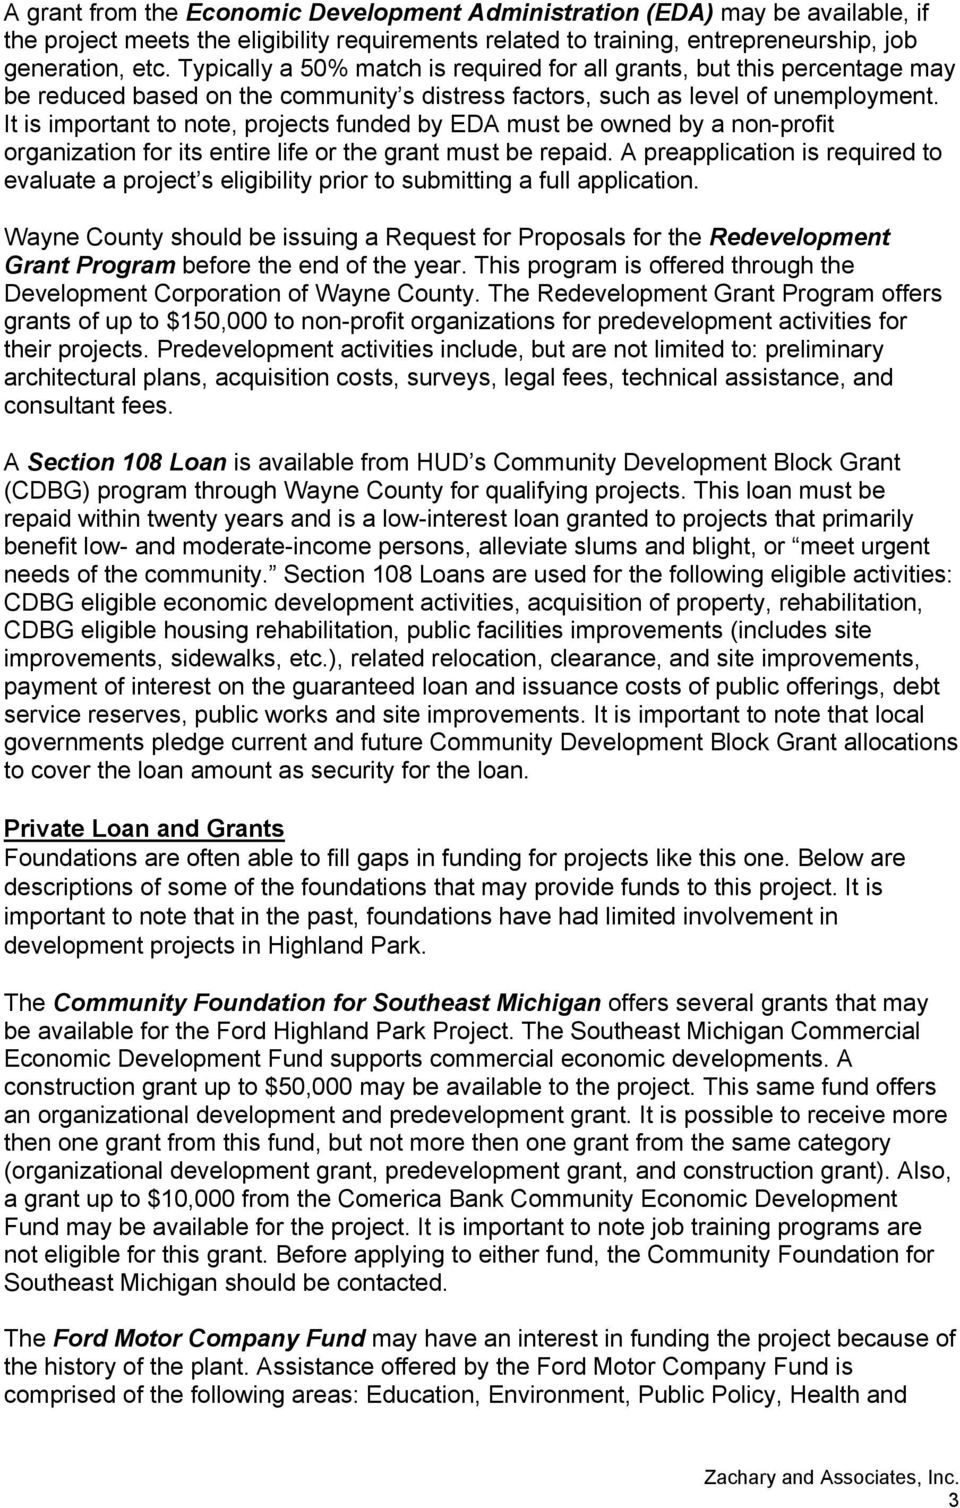 It is important to note, projects funded by EDA must be owned by a non-profit organization for its entire life or the grant must be repaid.